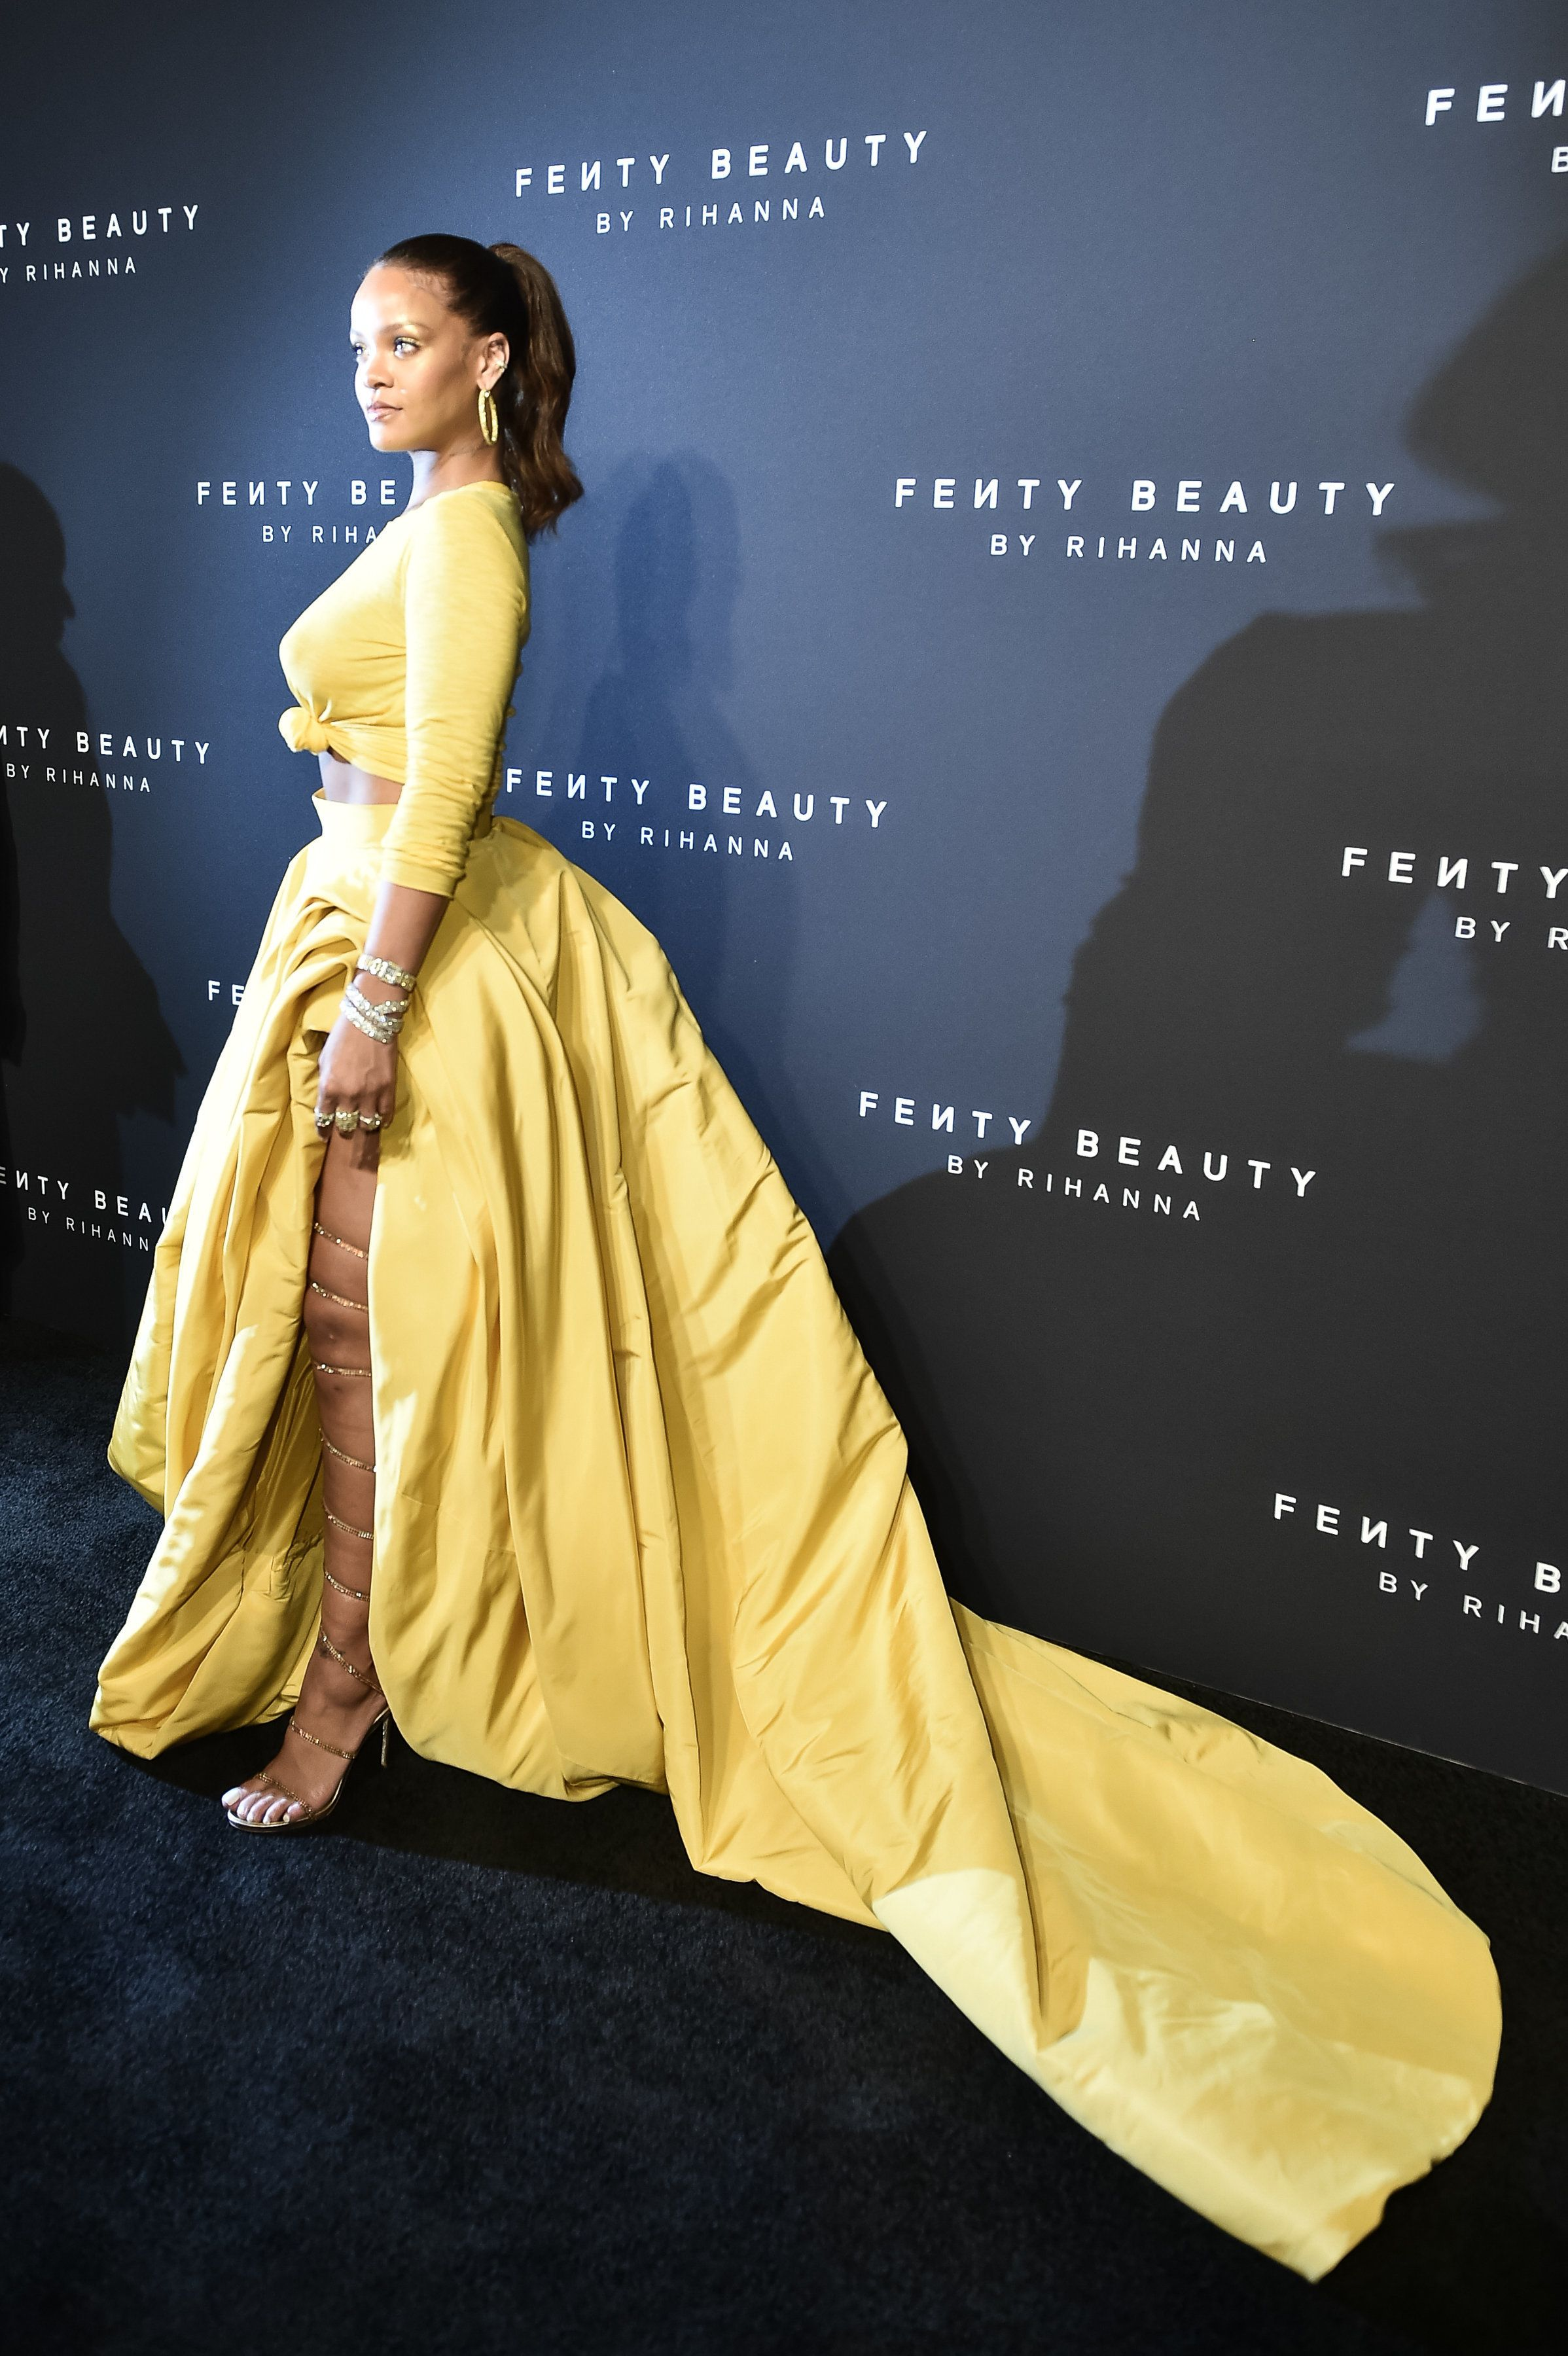 Rihanna Simply Glows At Her Inclusive Cosmetics Line, Fenty Beauty